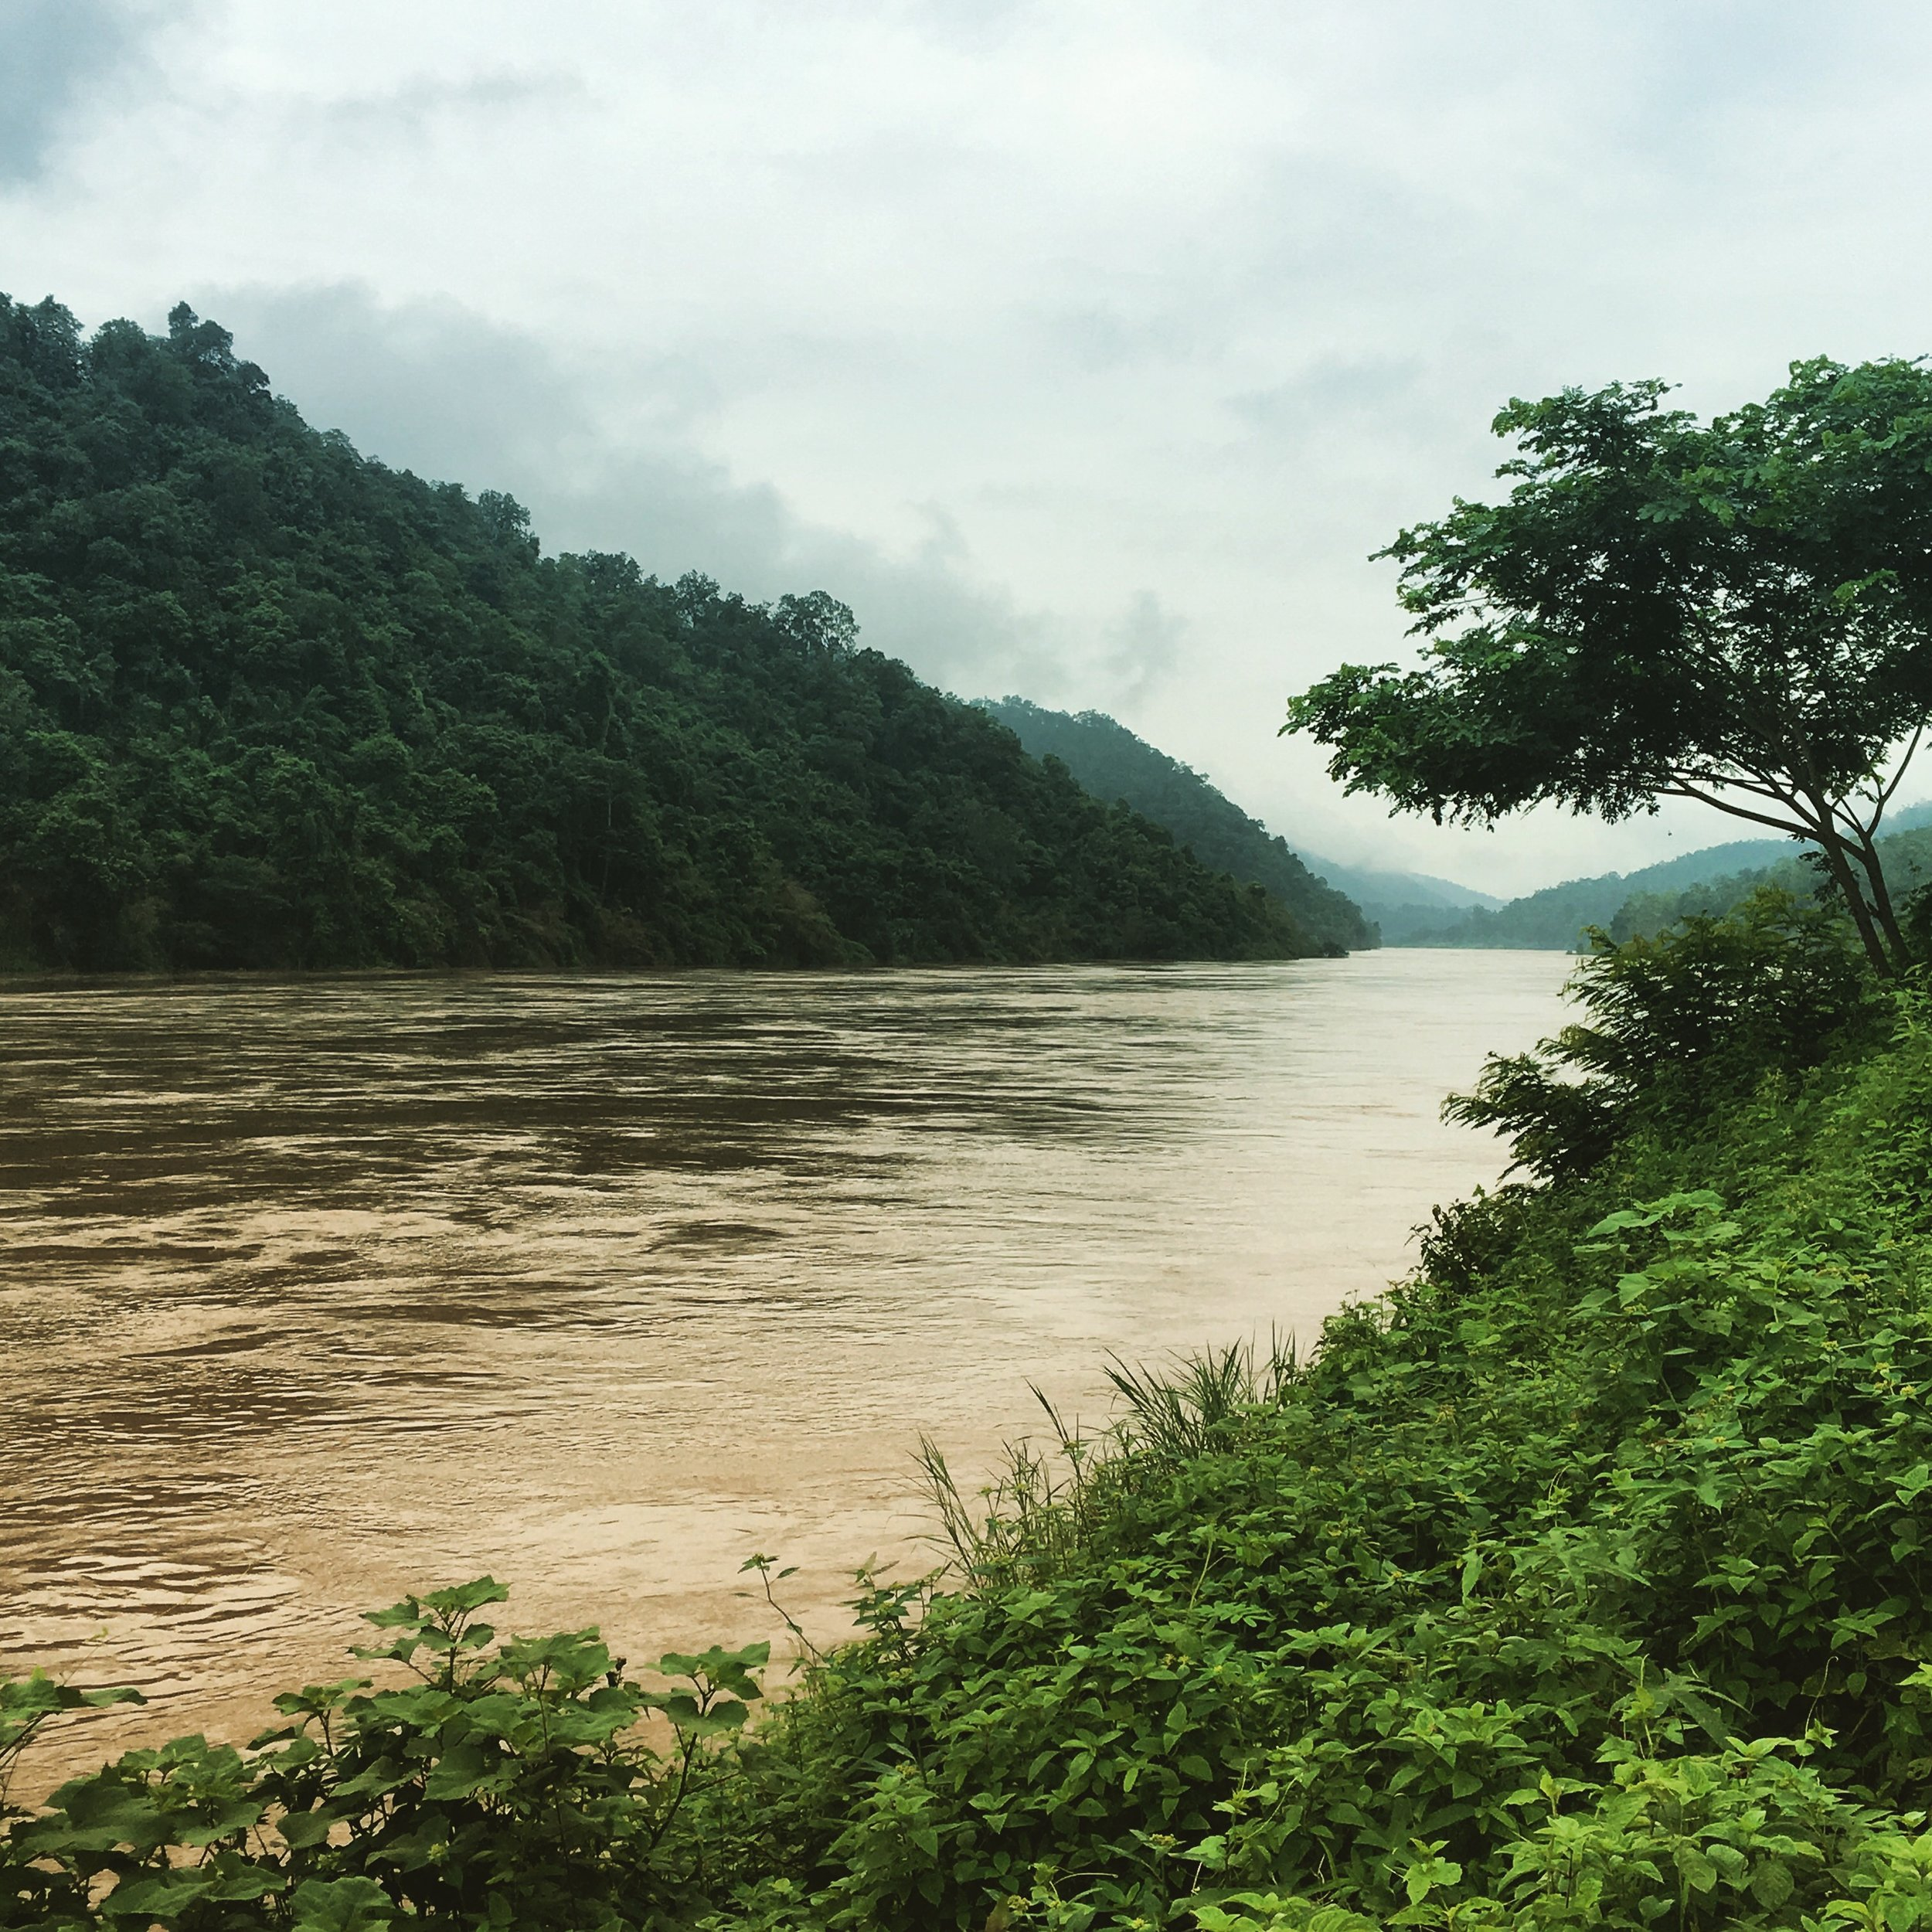 The Salawin River - between Thailand and Myanmar